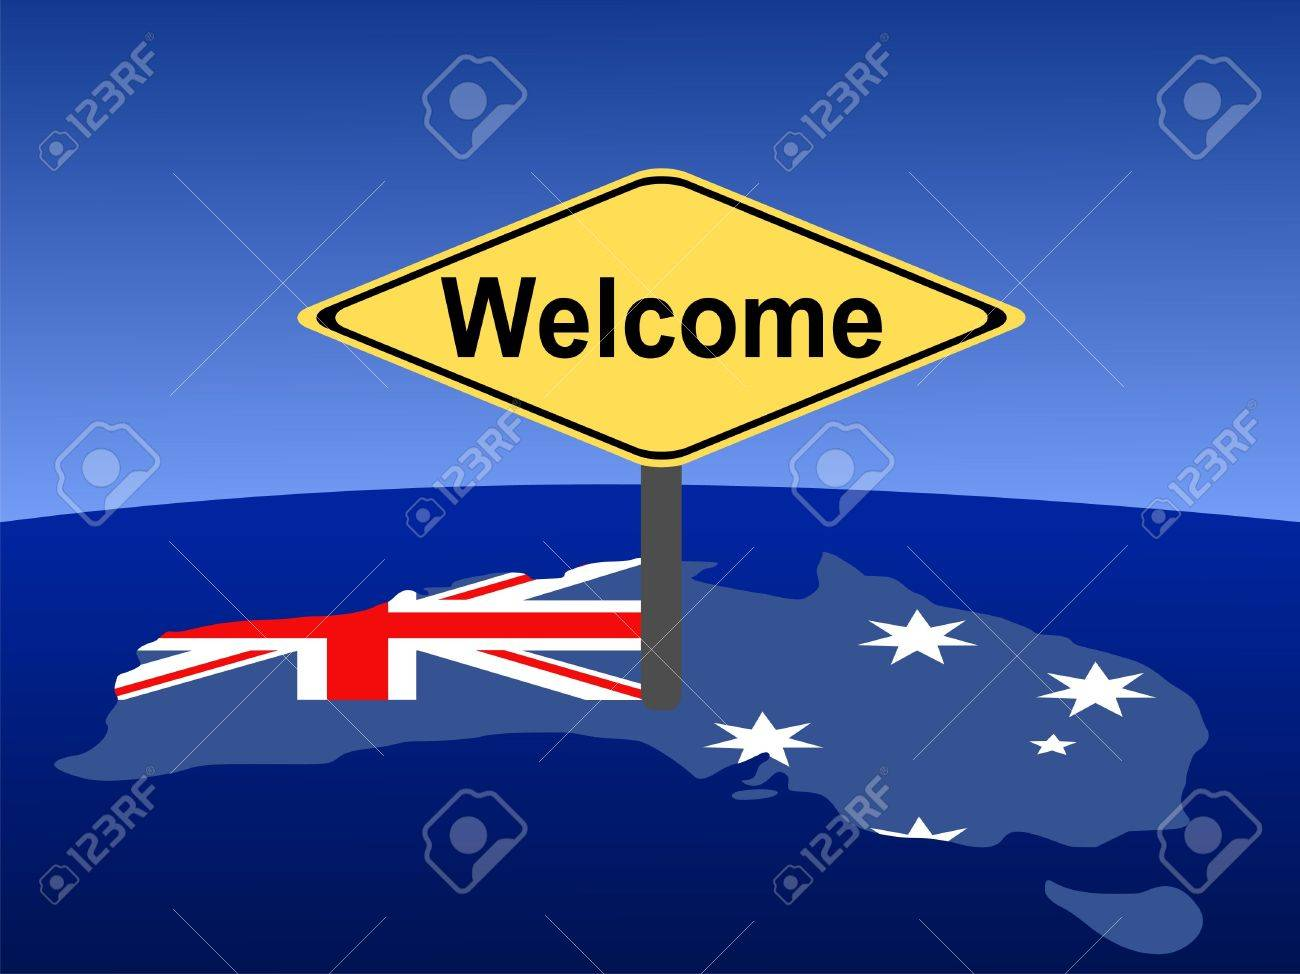 Giant Map Of Australia.Map And Flag Of Australia With Giant Welcome Sign